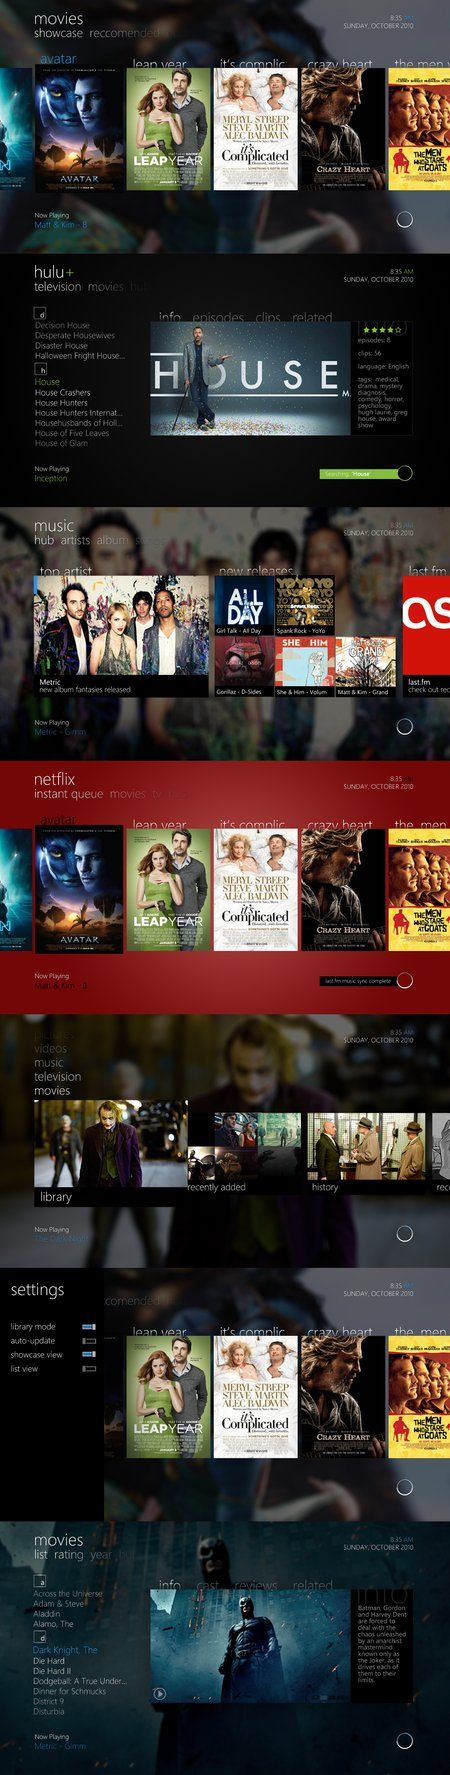 Our XMBC will look similar to this, and I will rip all of our movies to it, so…